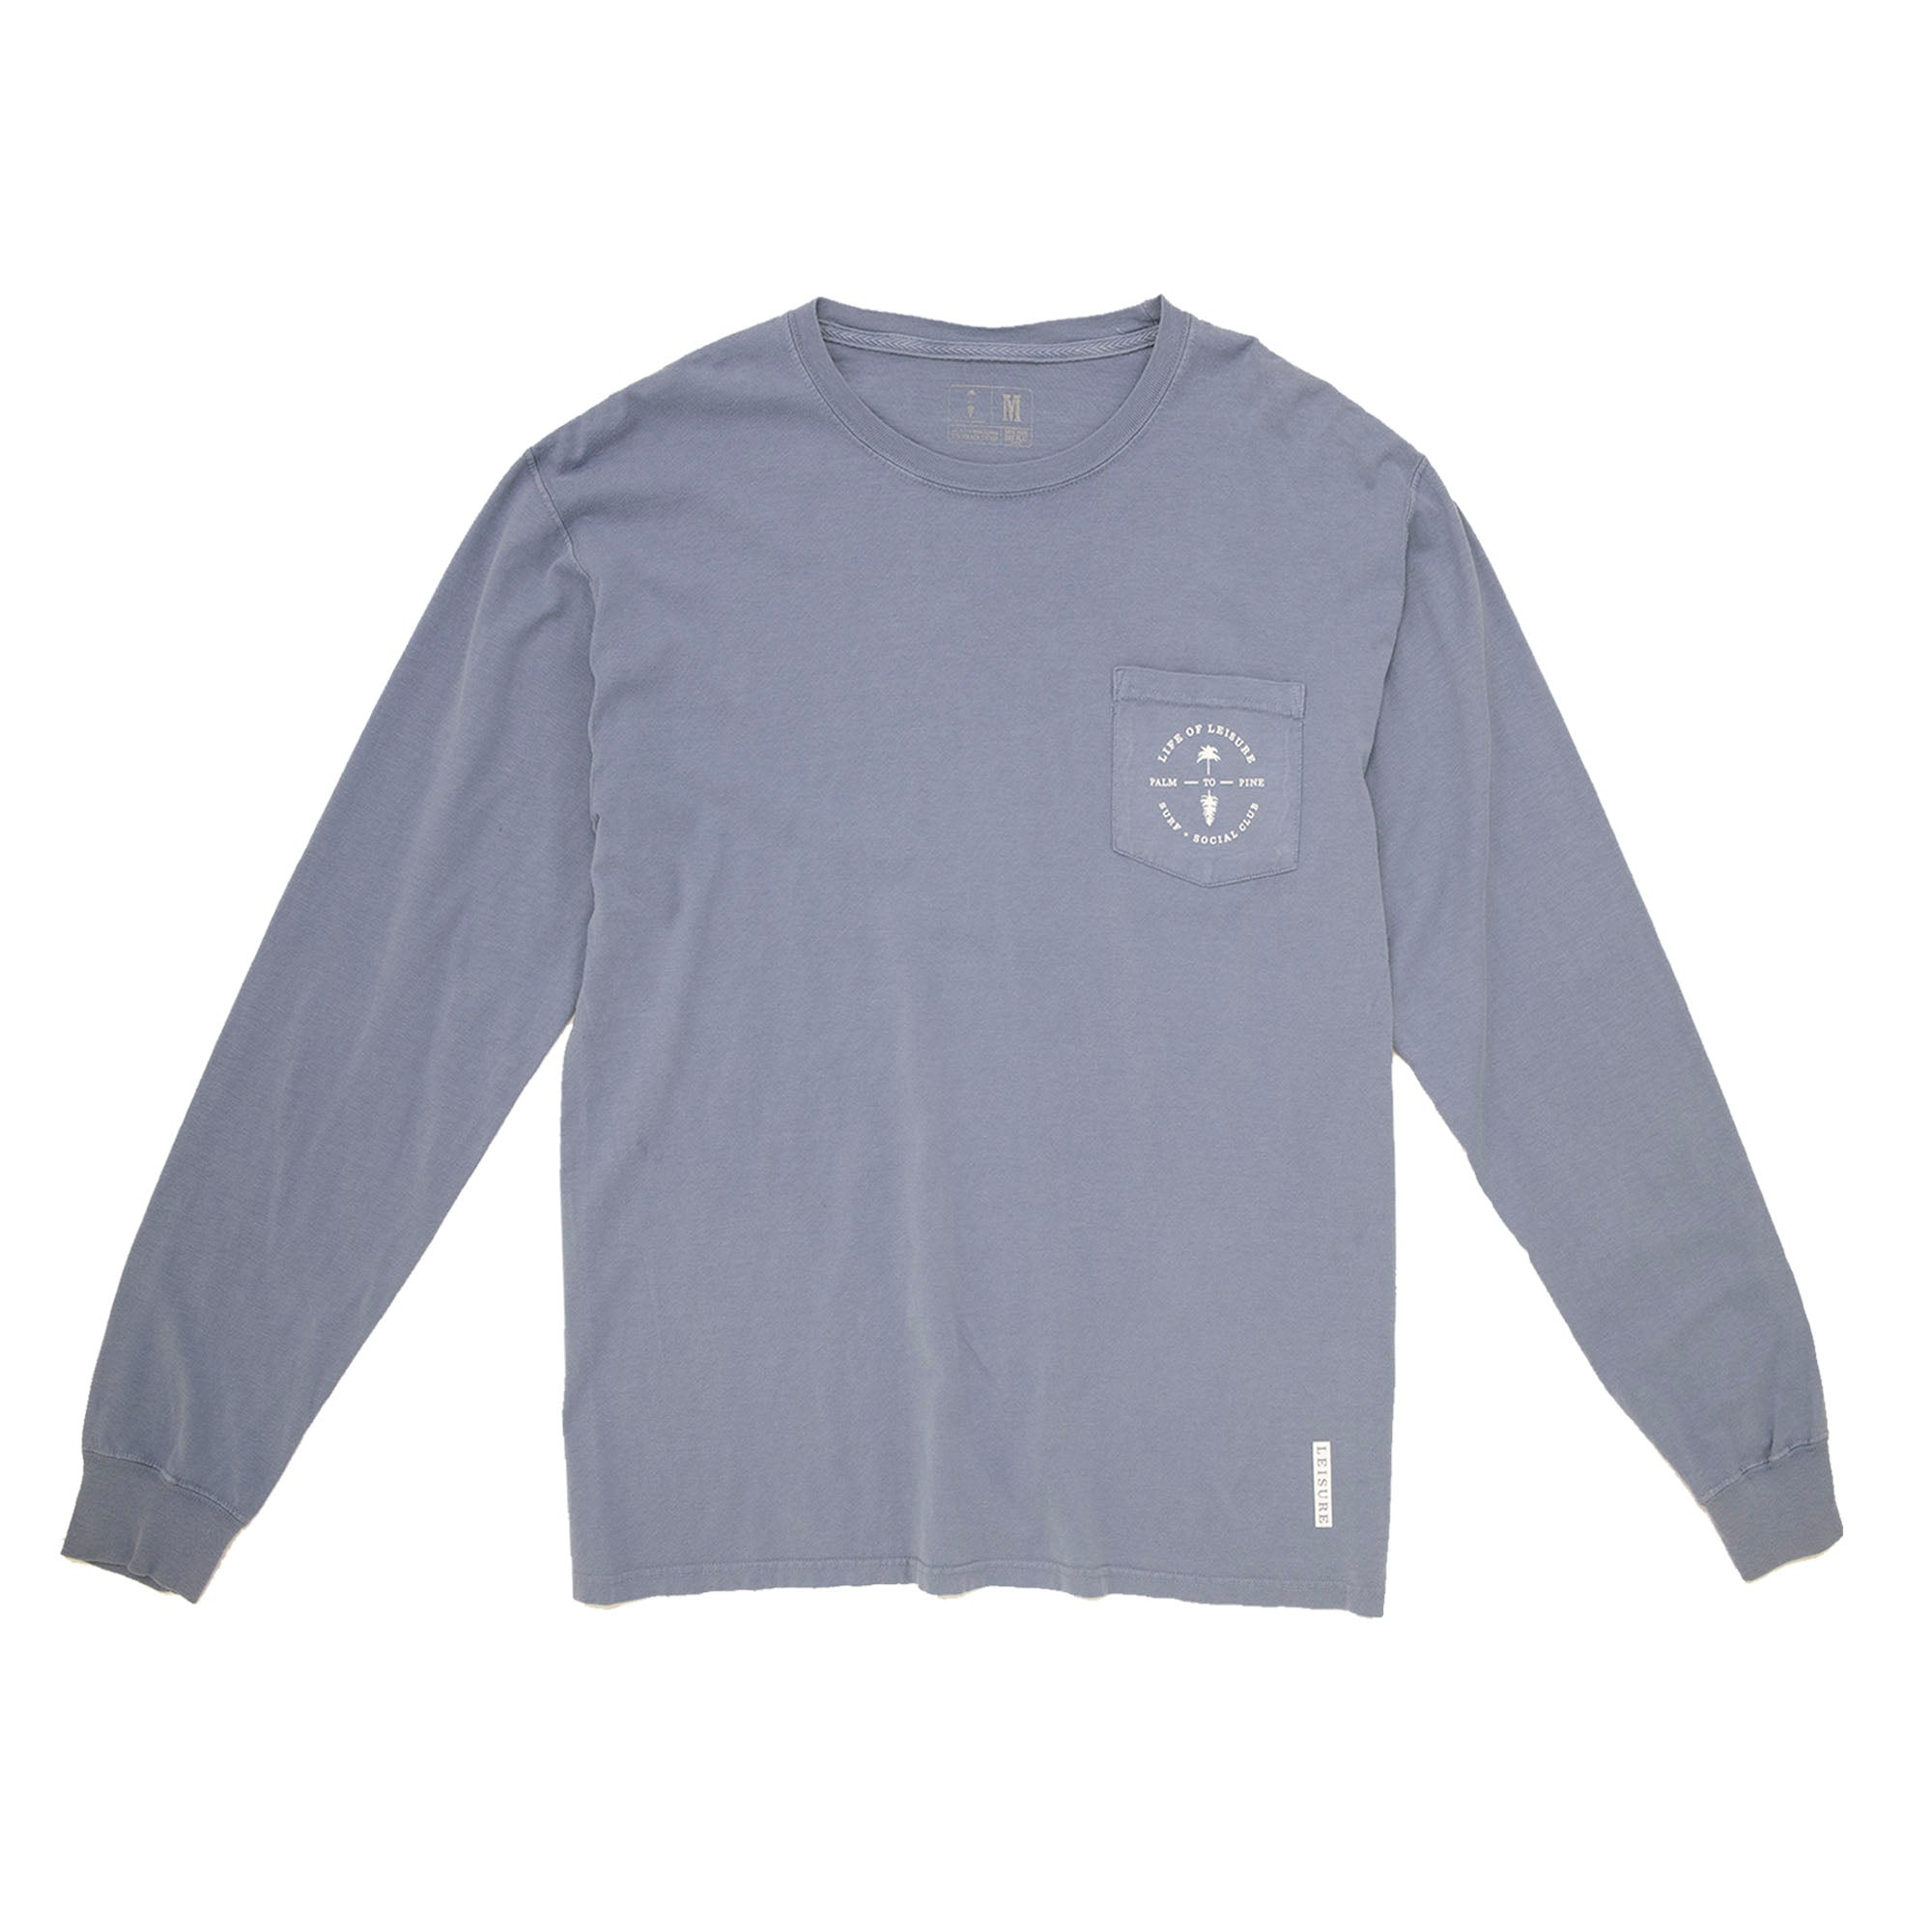 Courier Paradise Crest Pocket Long Sleeve